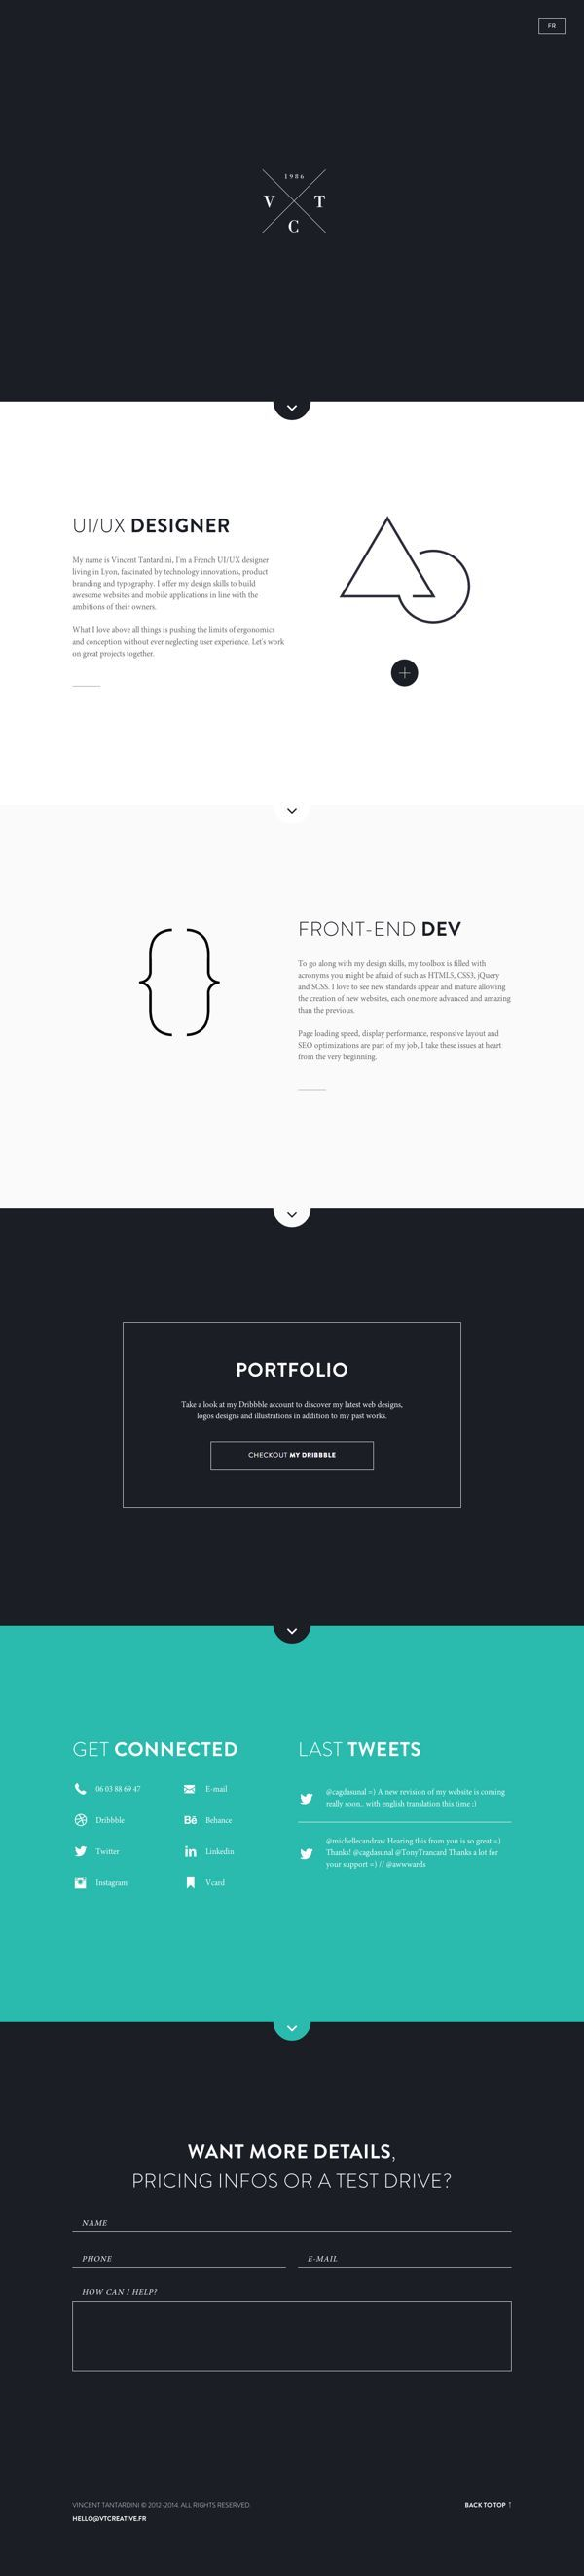 Personal website by Vincent Tantardini, via Behance